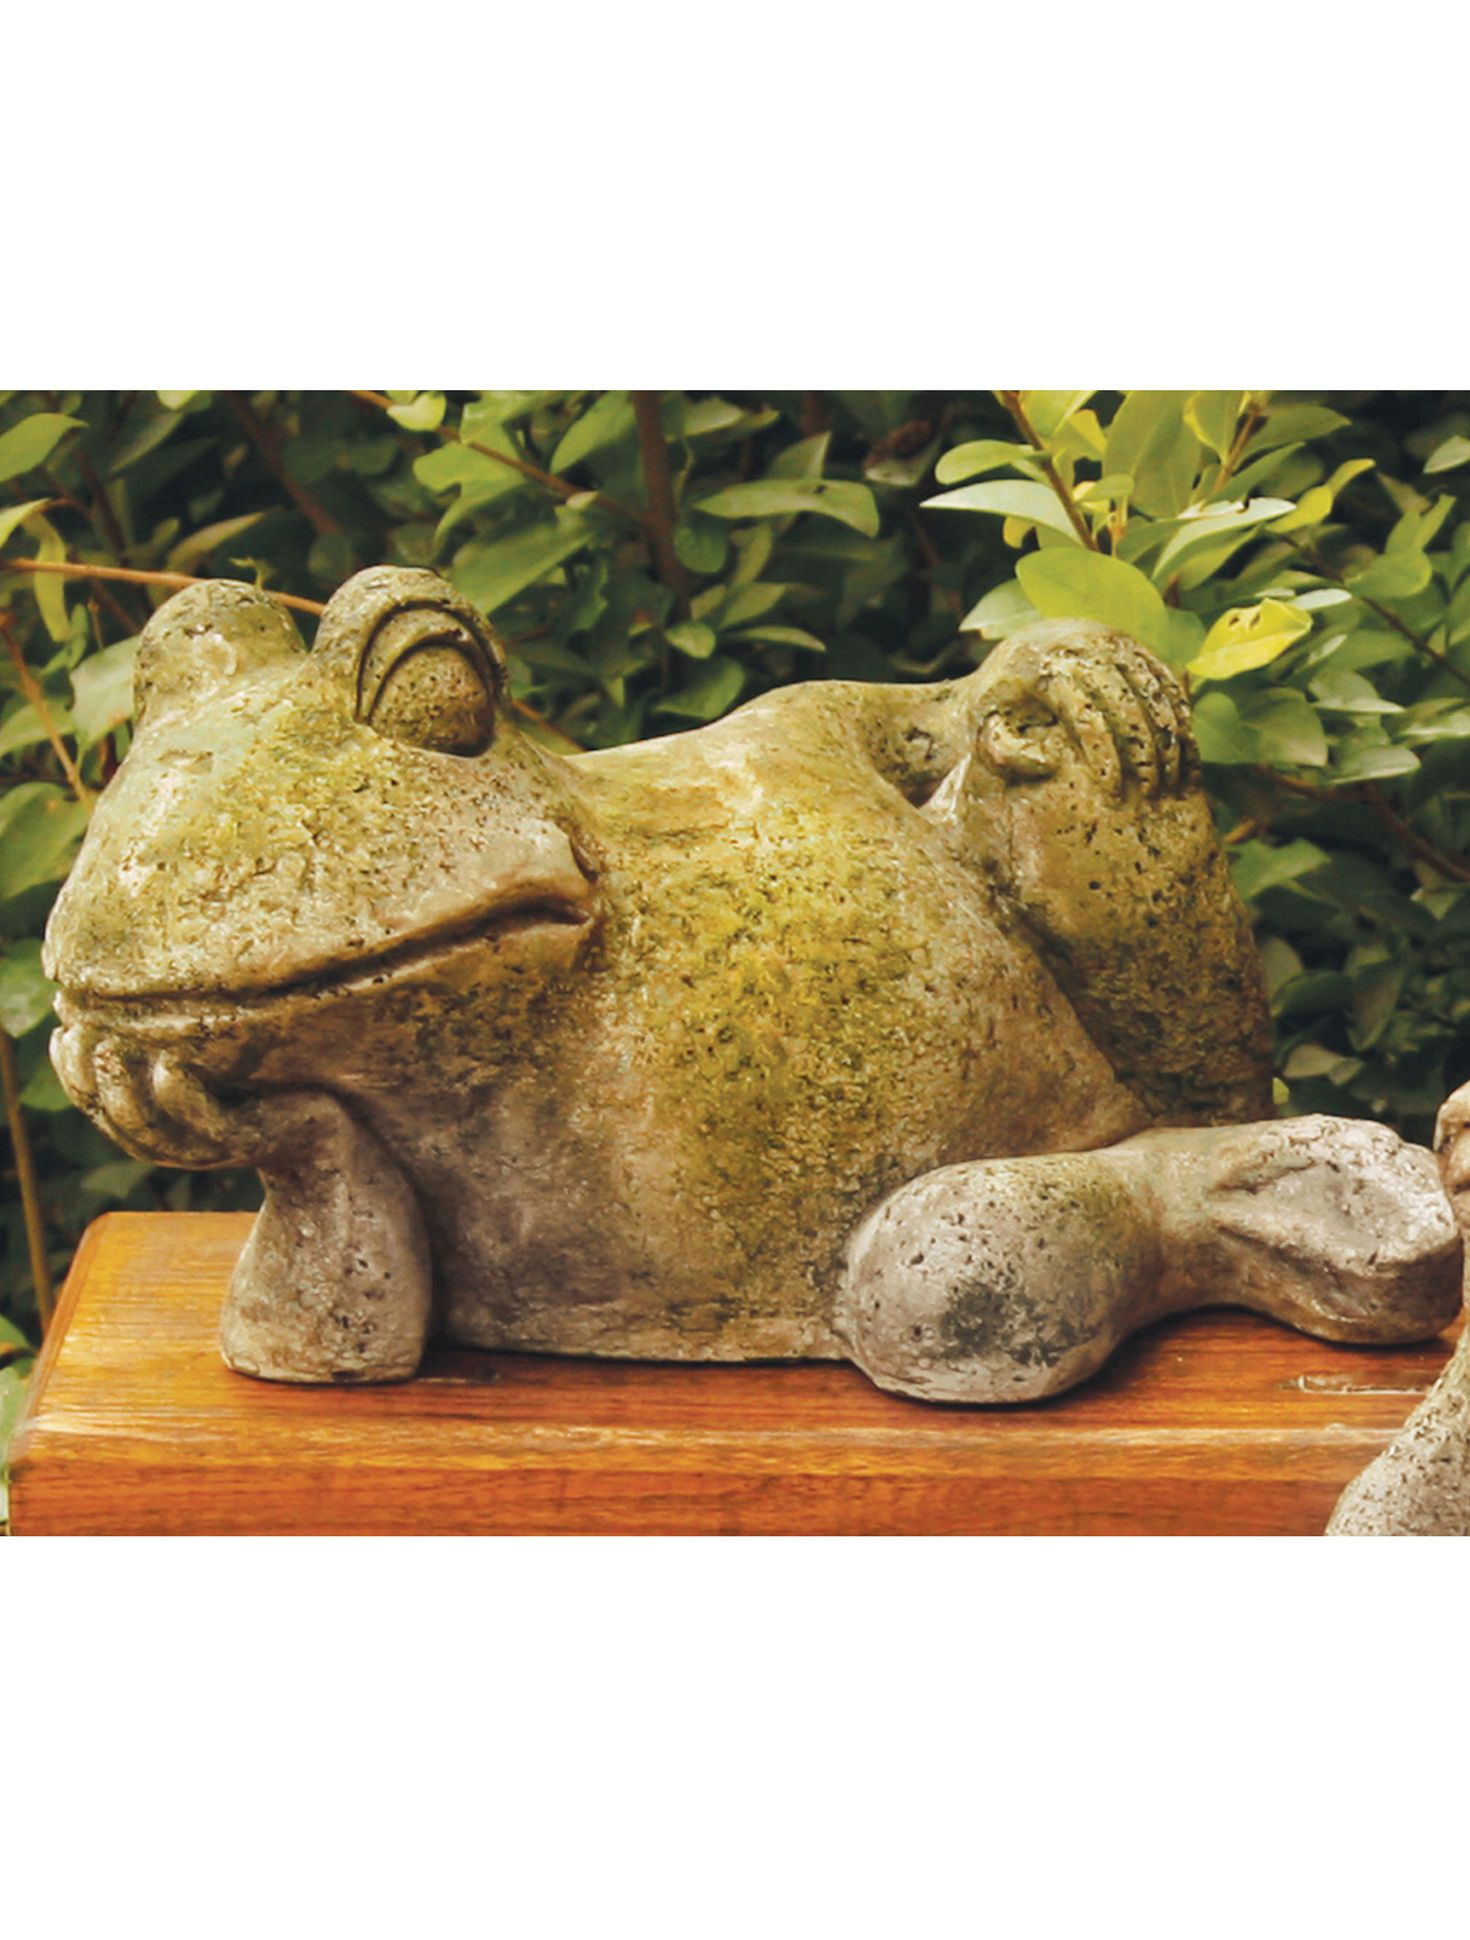 Gossip Frog Statue For The Garden   Made In USA | Gardeners.com